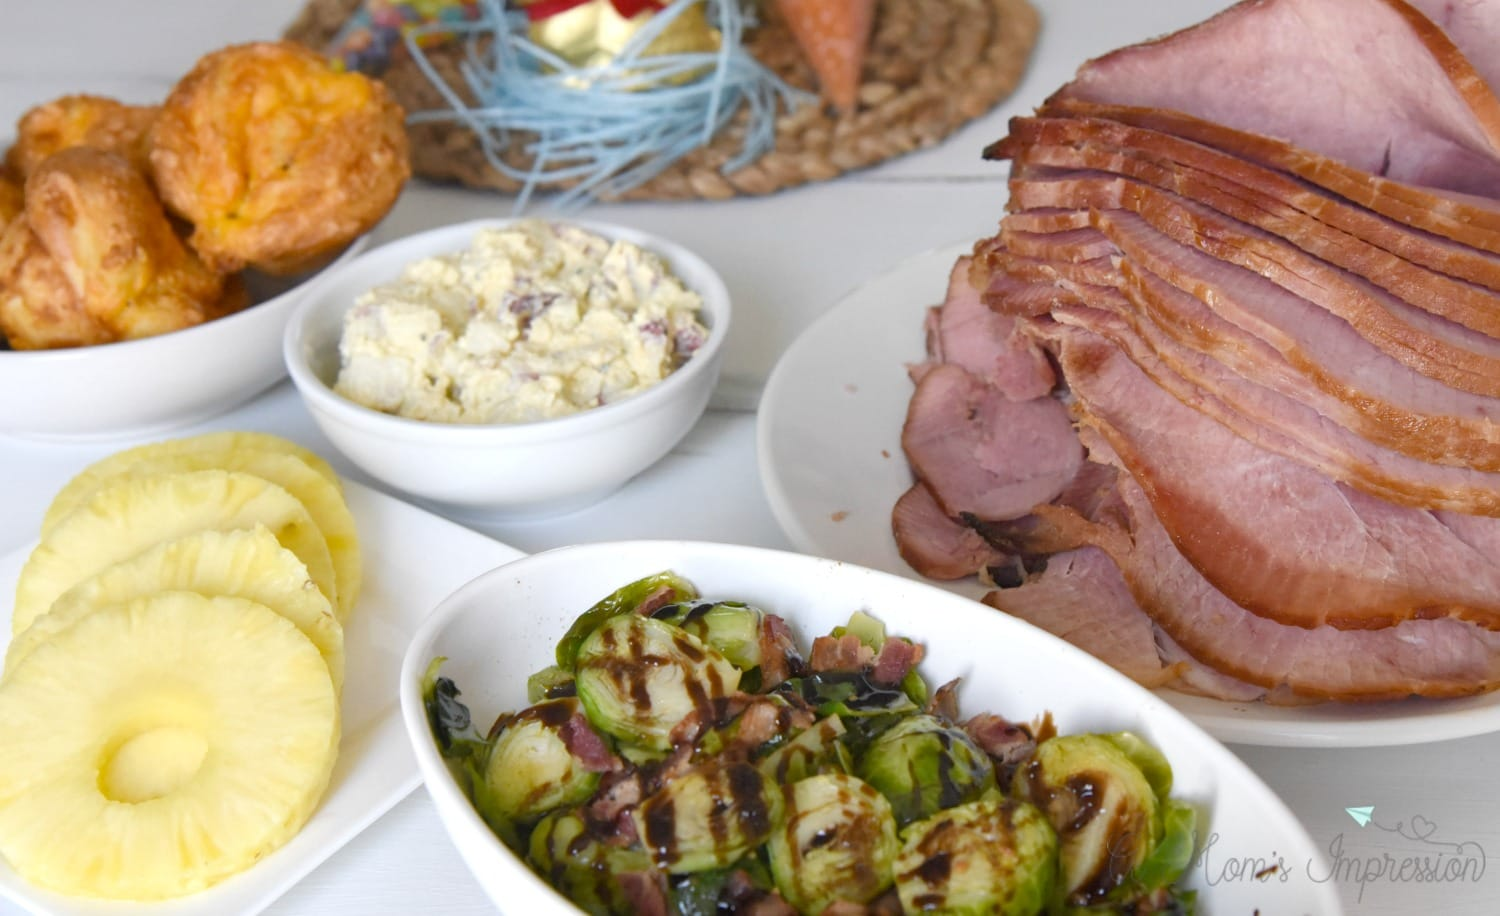 Easter Dinner with pineapple, brussels, ham and potato salad on the table.